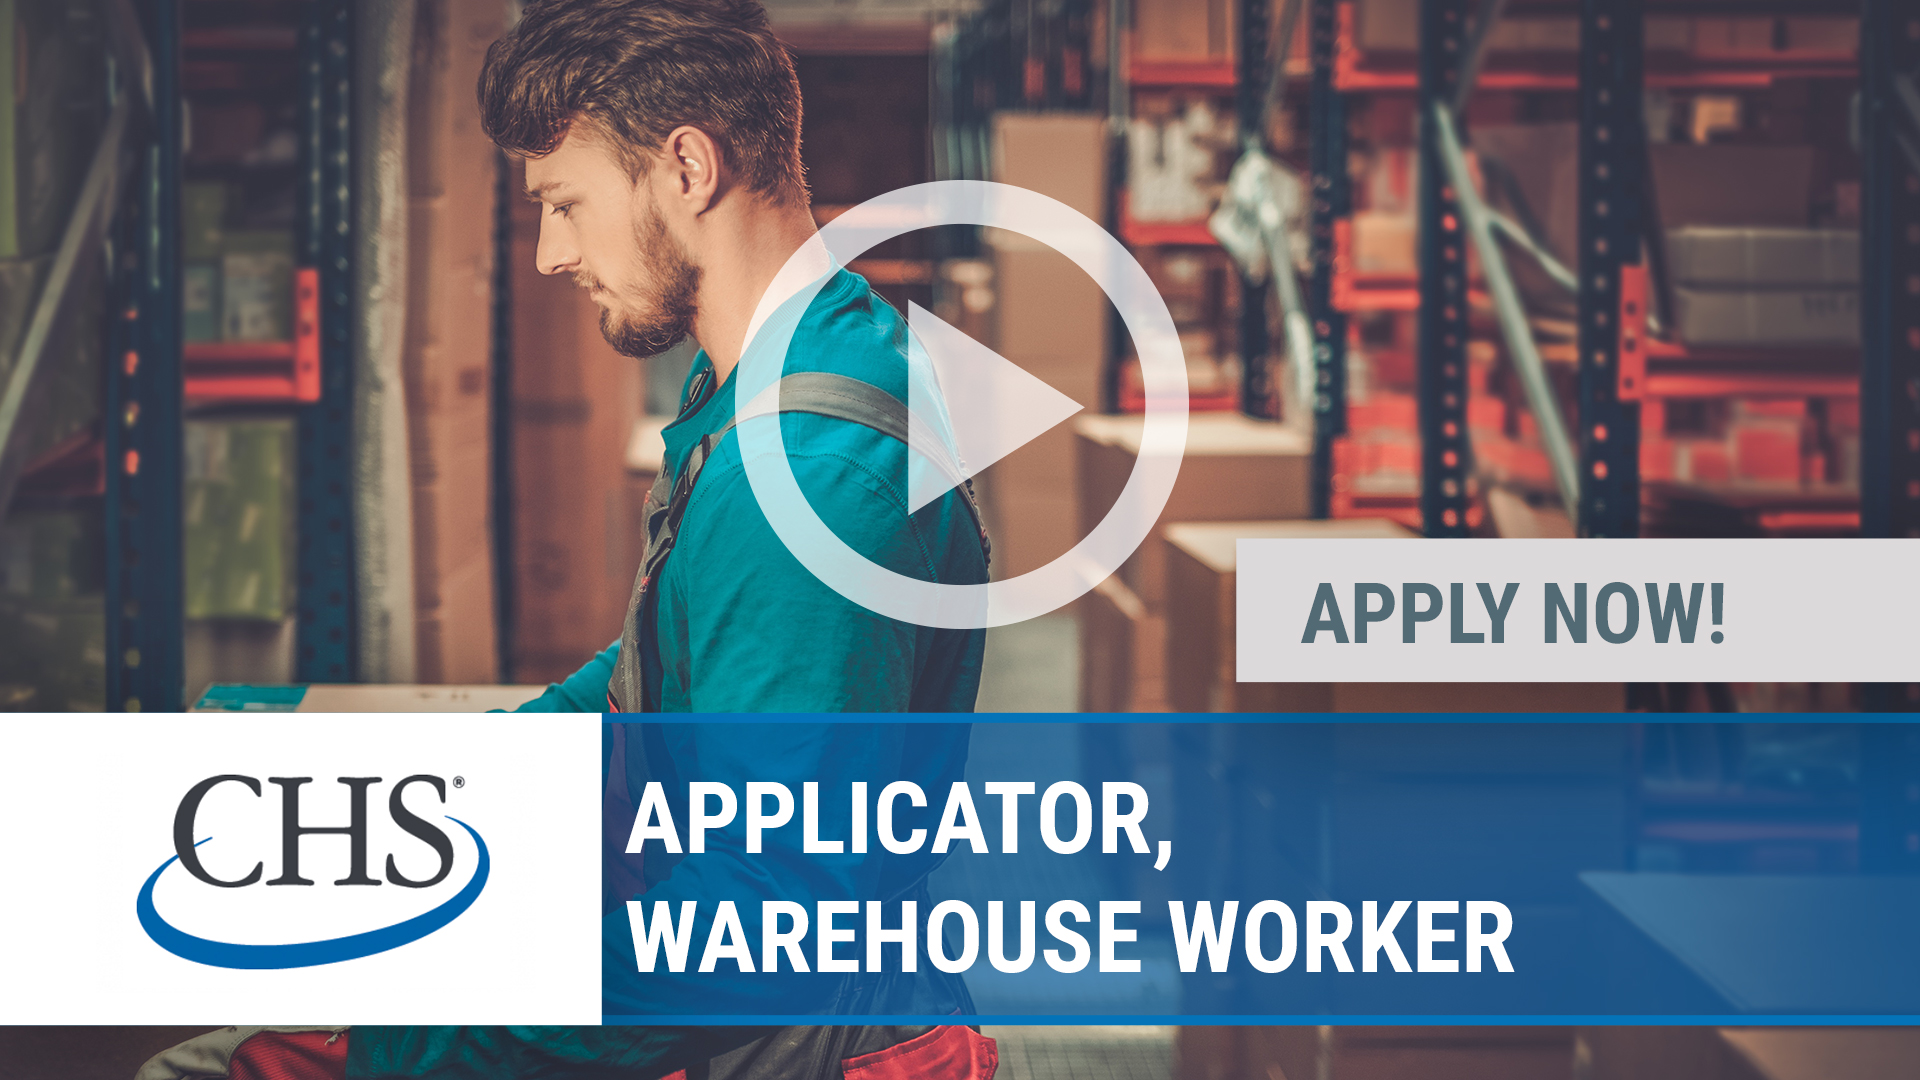 Watch our careers video for available job opening APPLICATOR, WAREHOUSE WORKER in POCAHONTAS, IL